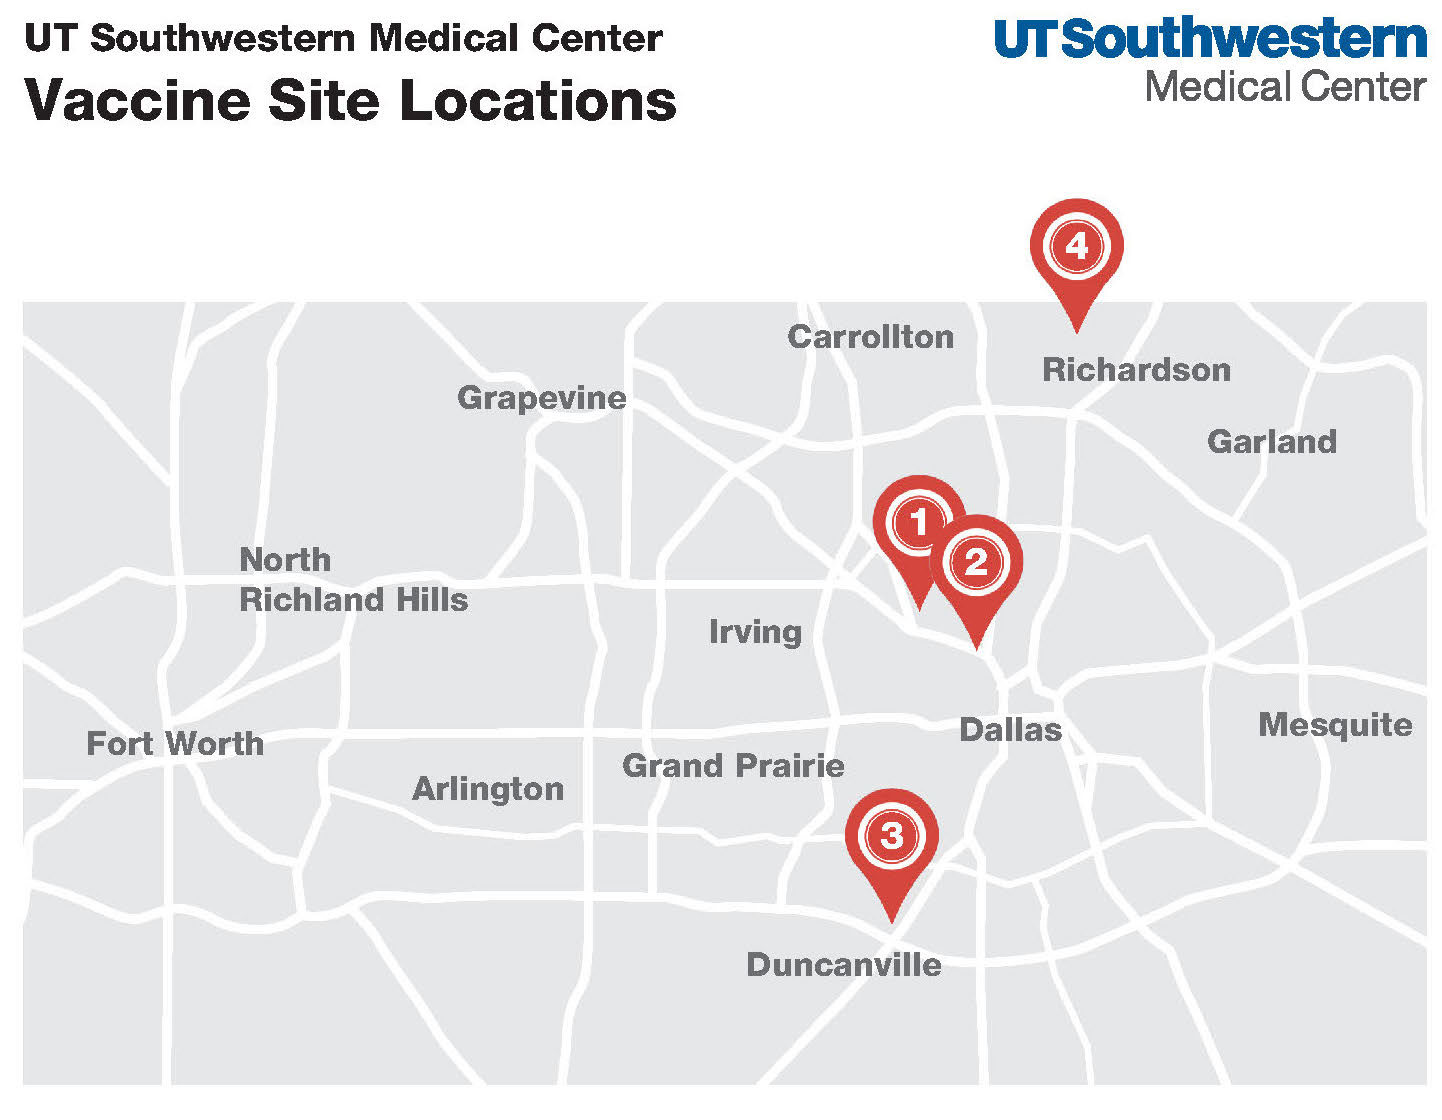 Vaccine Locations 4 sites v4 cropped.jpg